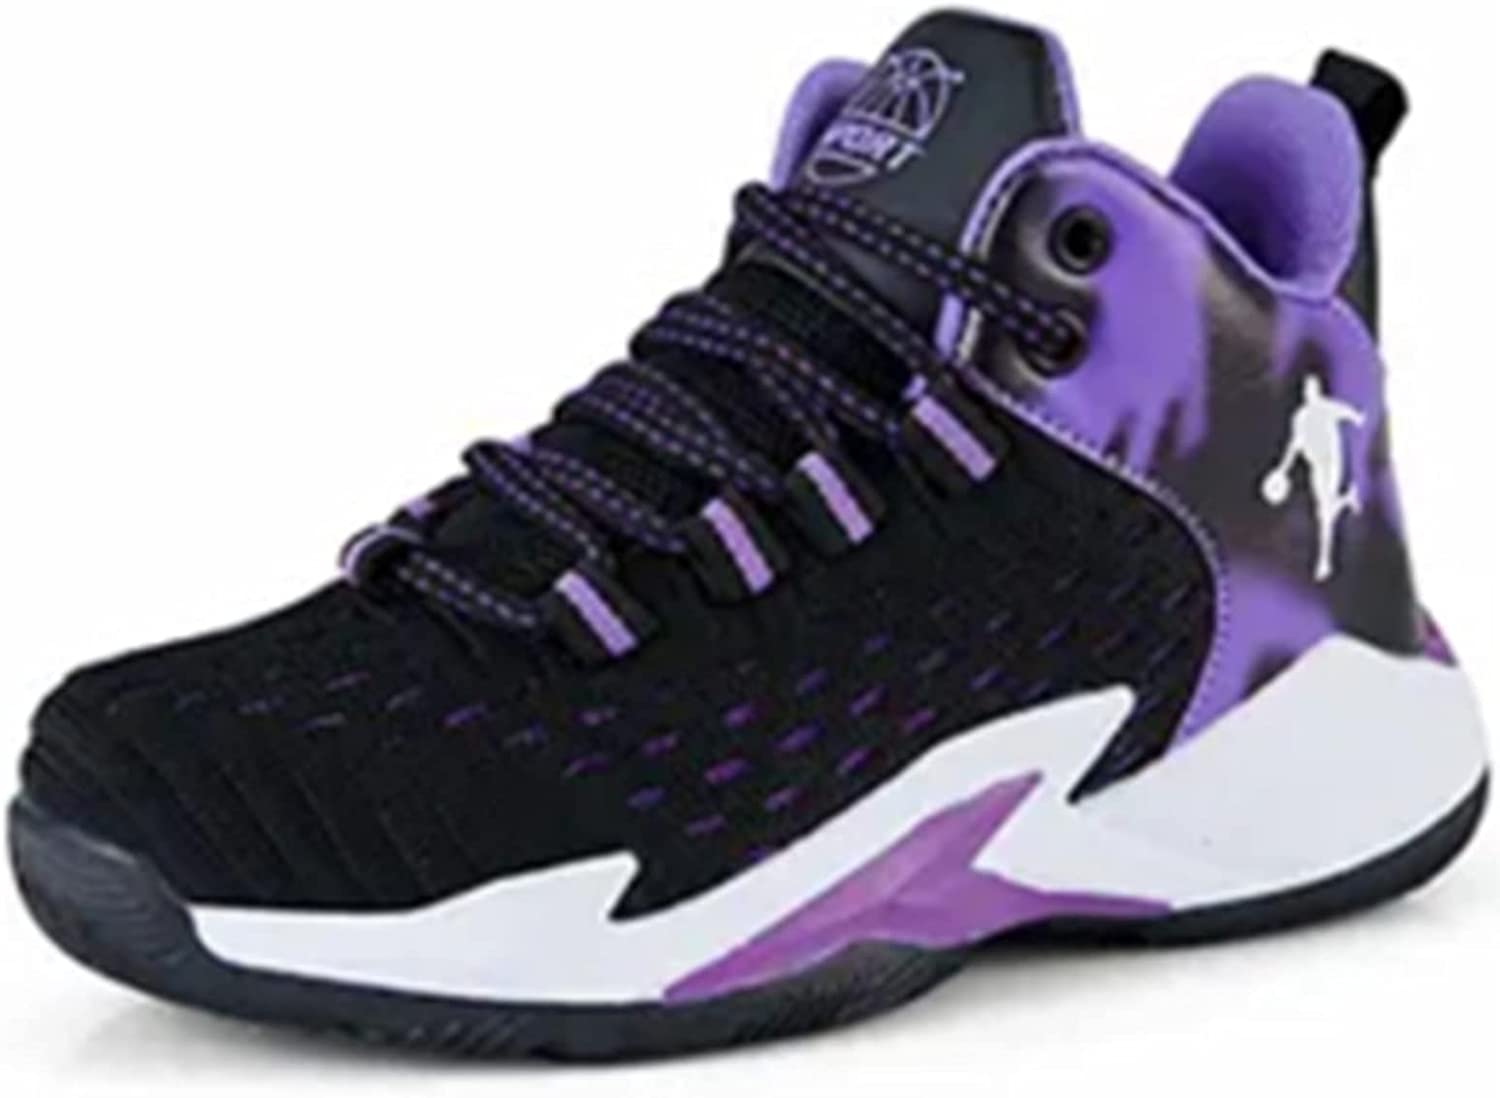 Ucilxi New Breathable Woven net Basketball Shoes